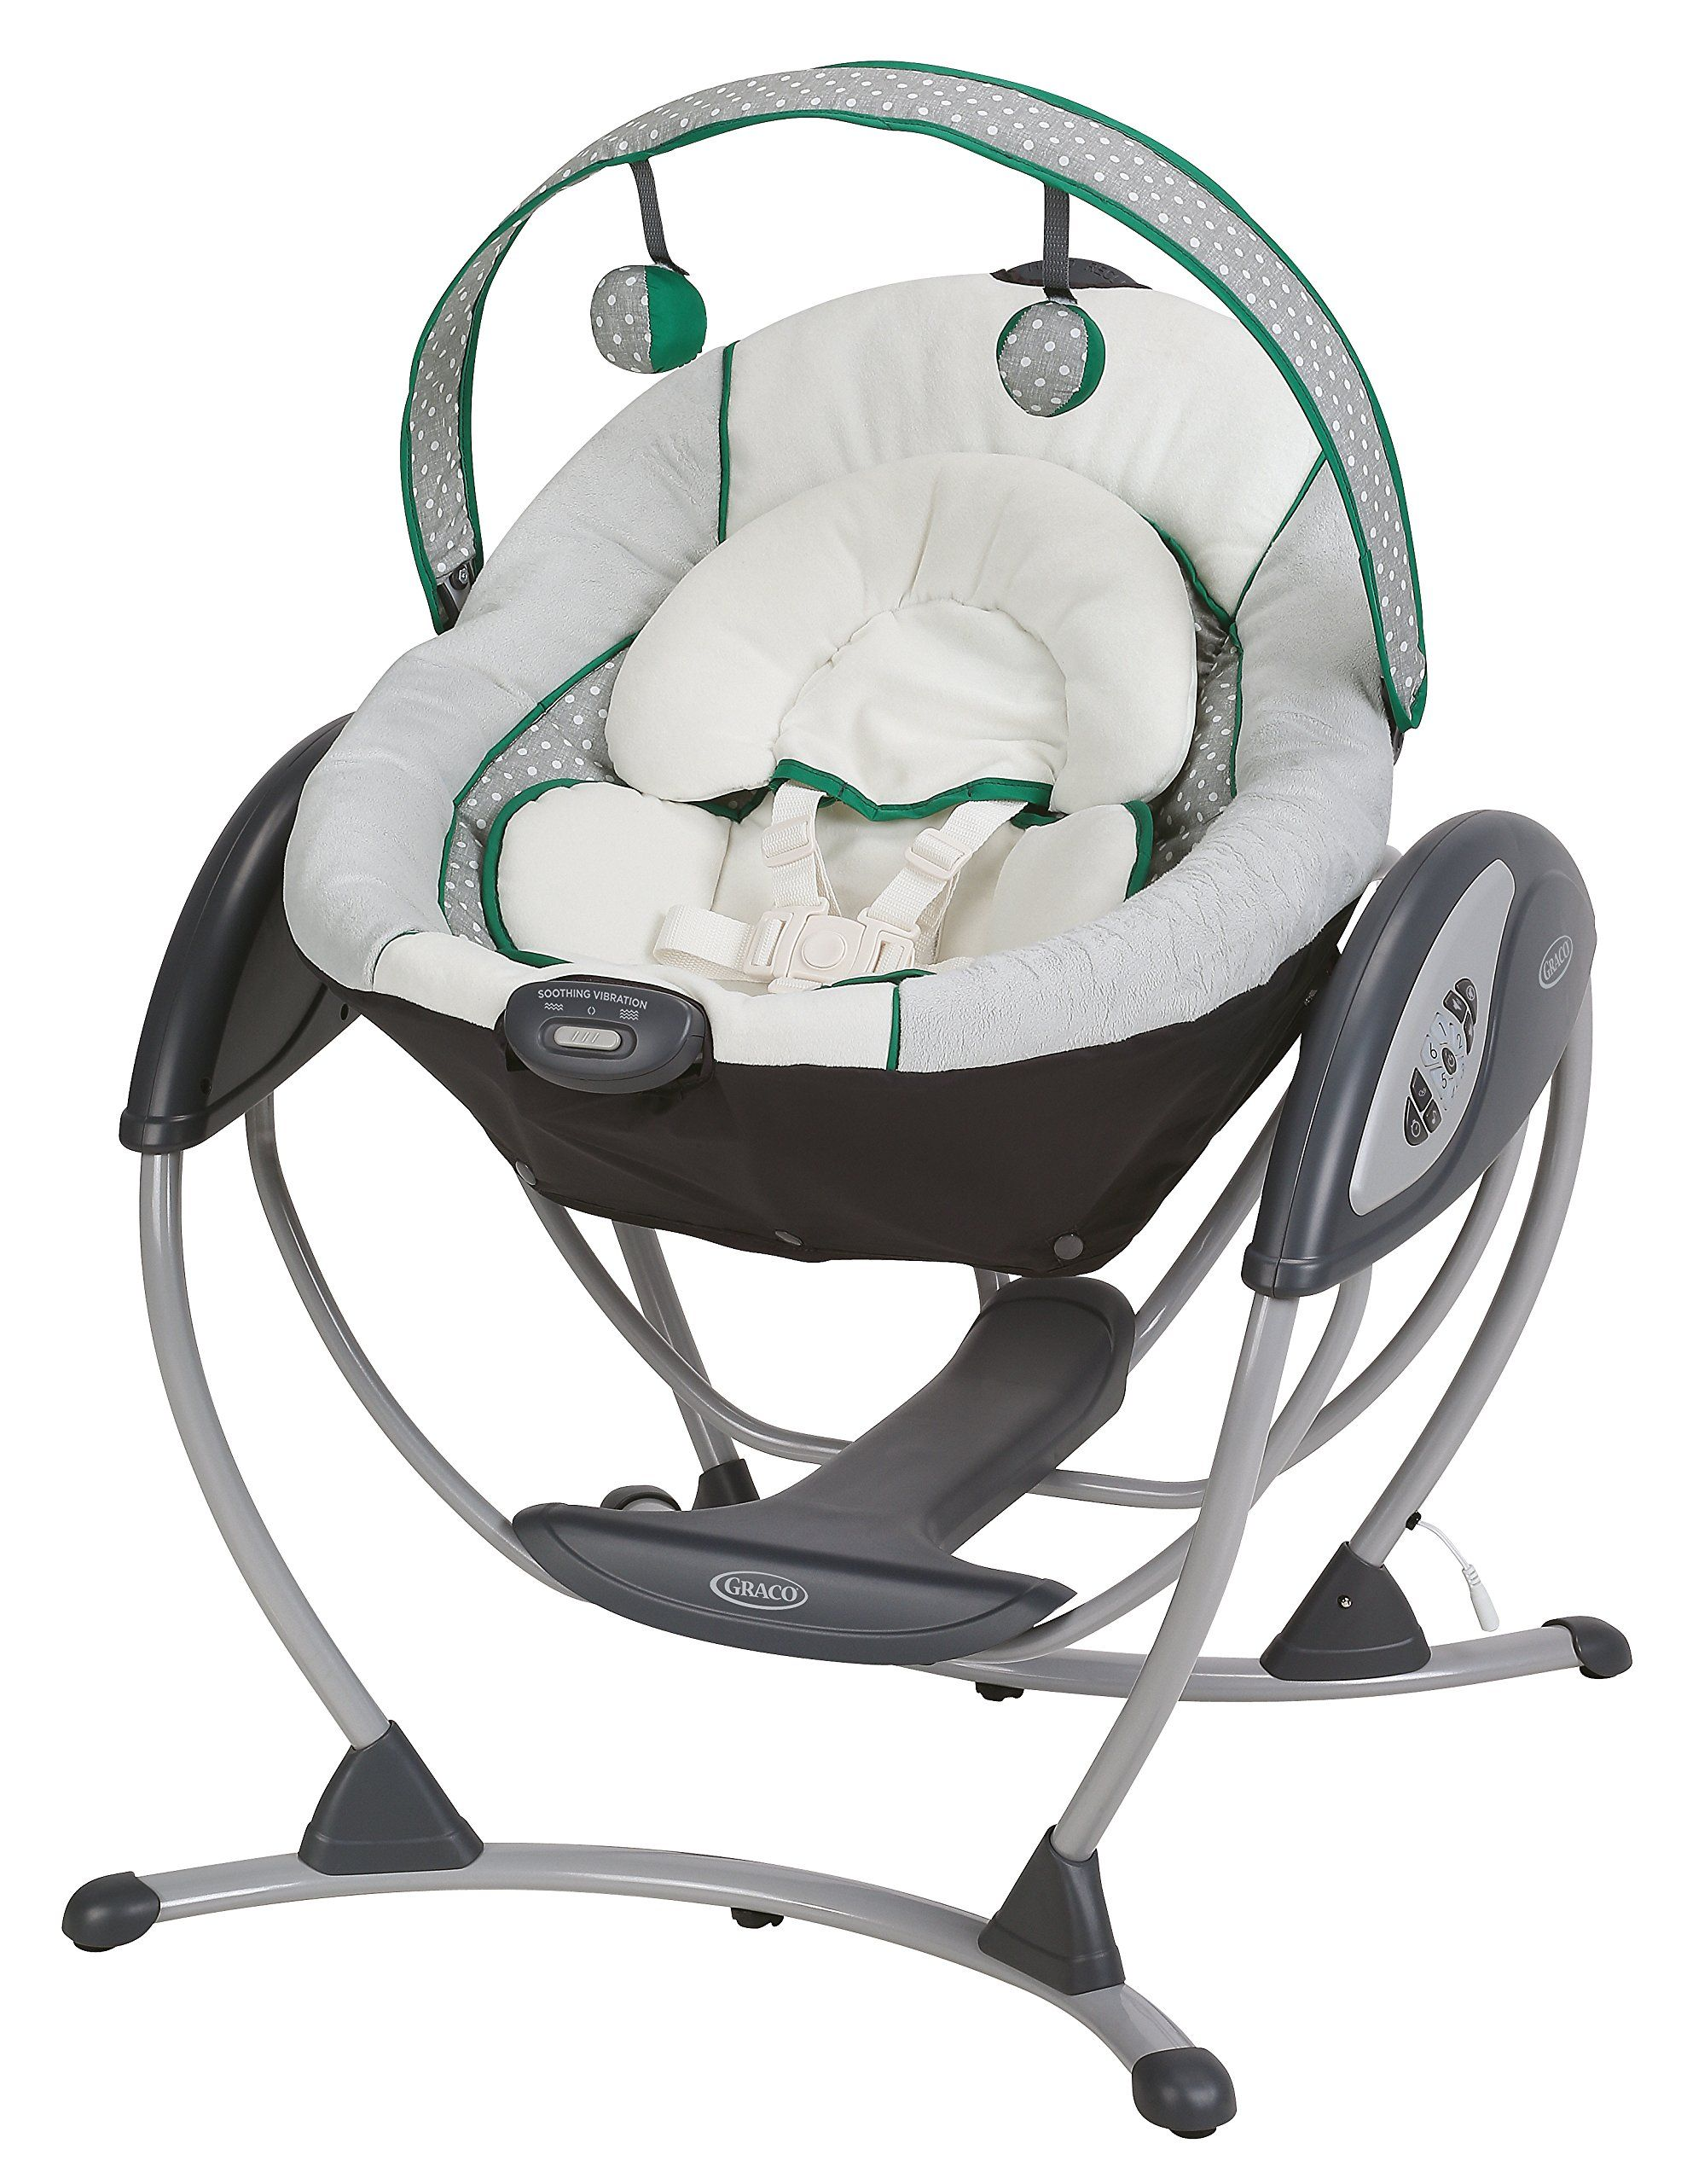 Graco Glider LX Baby Swing, Albie. Soothes with the same gentle ...